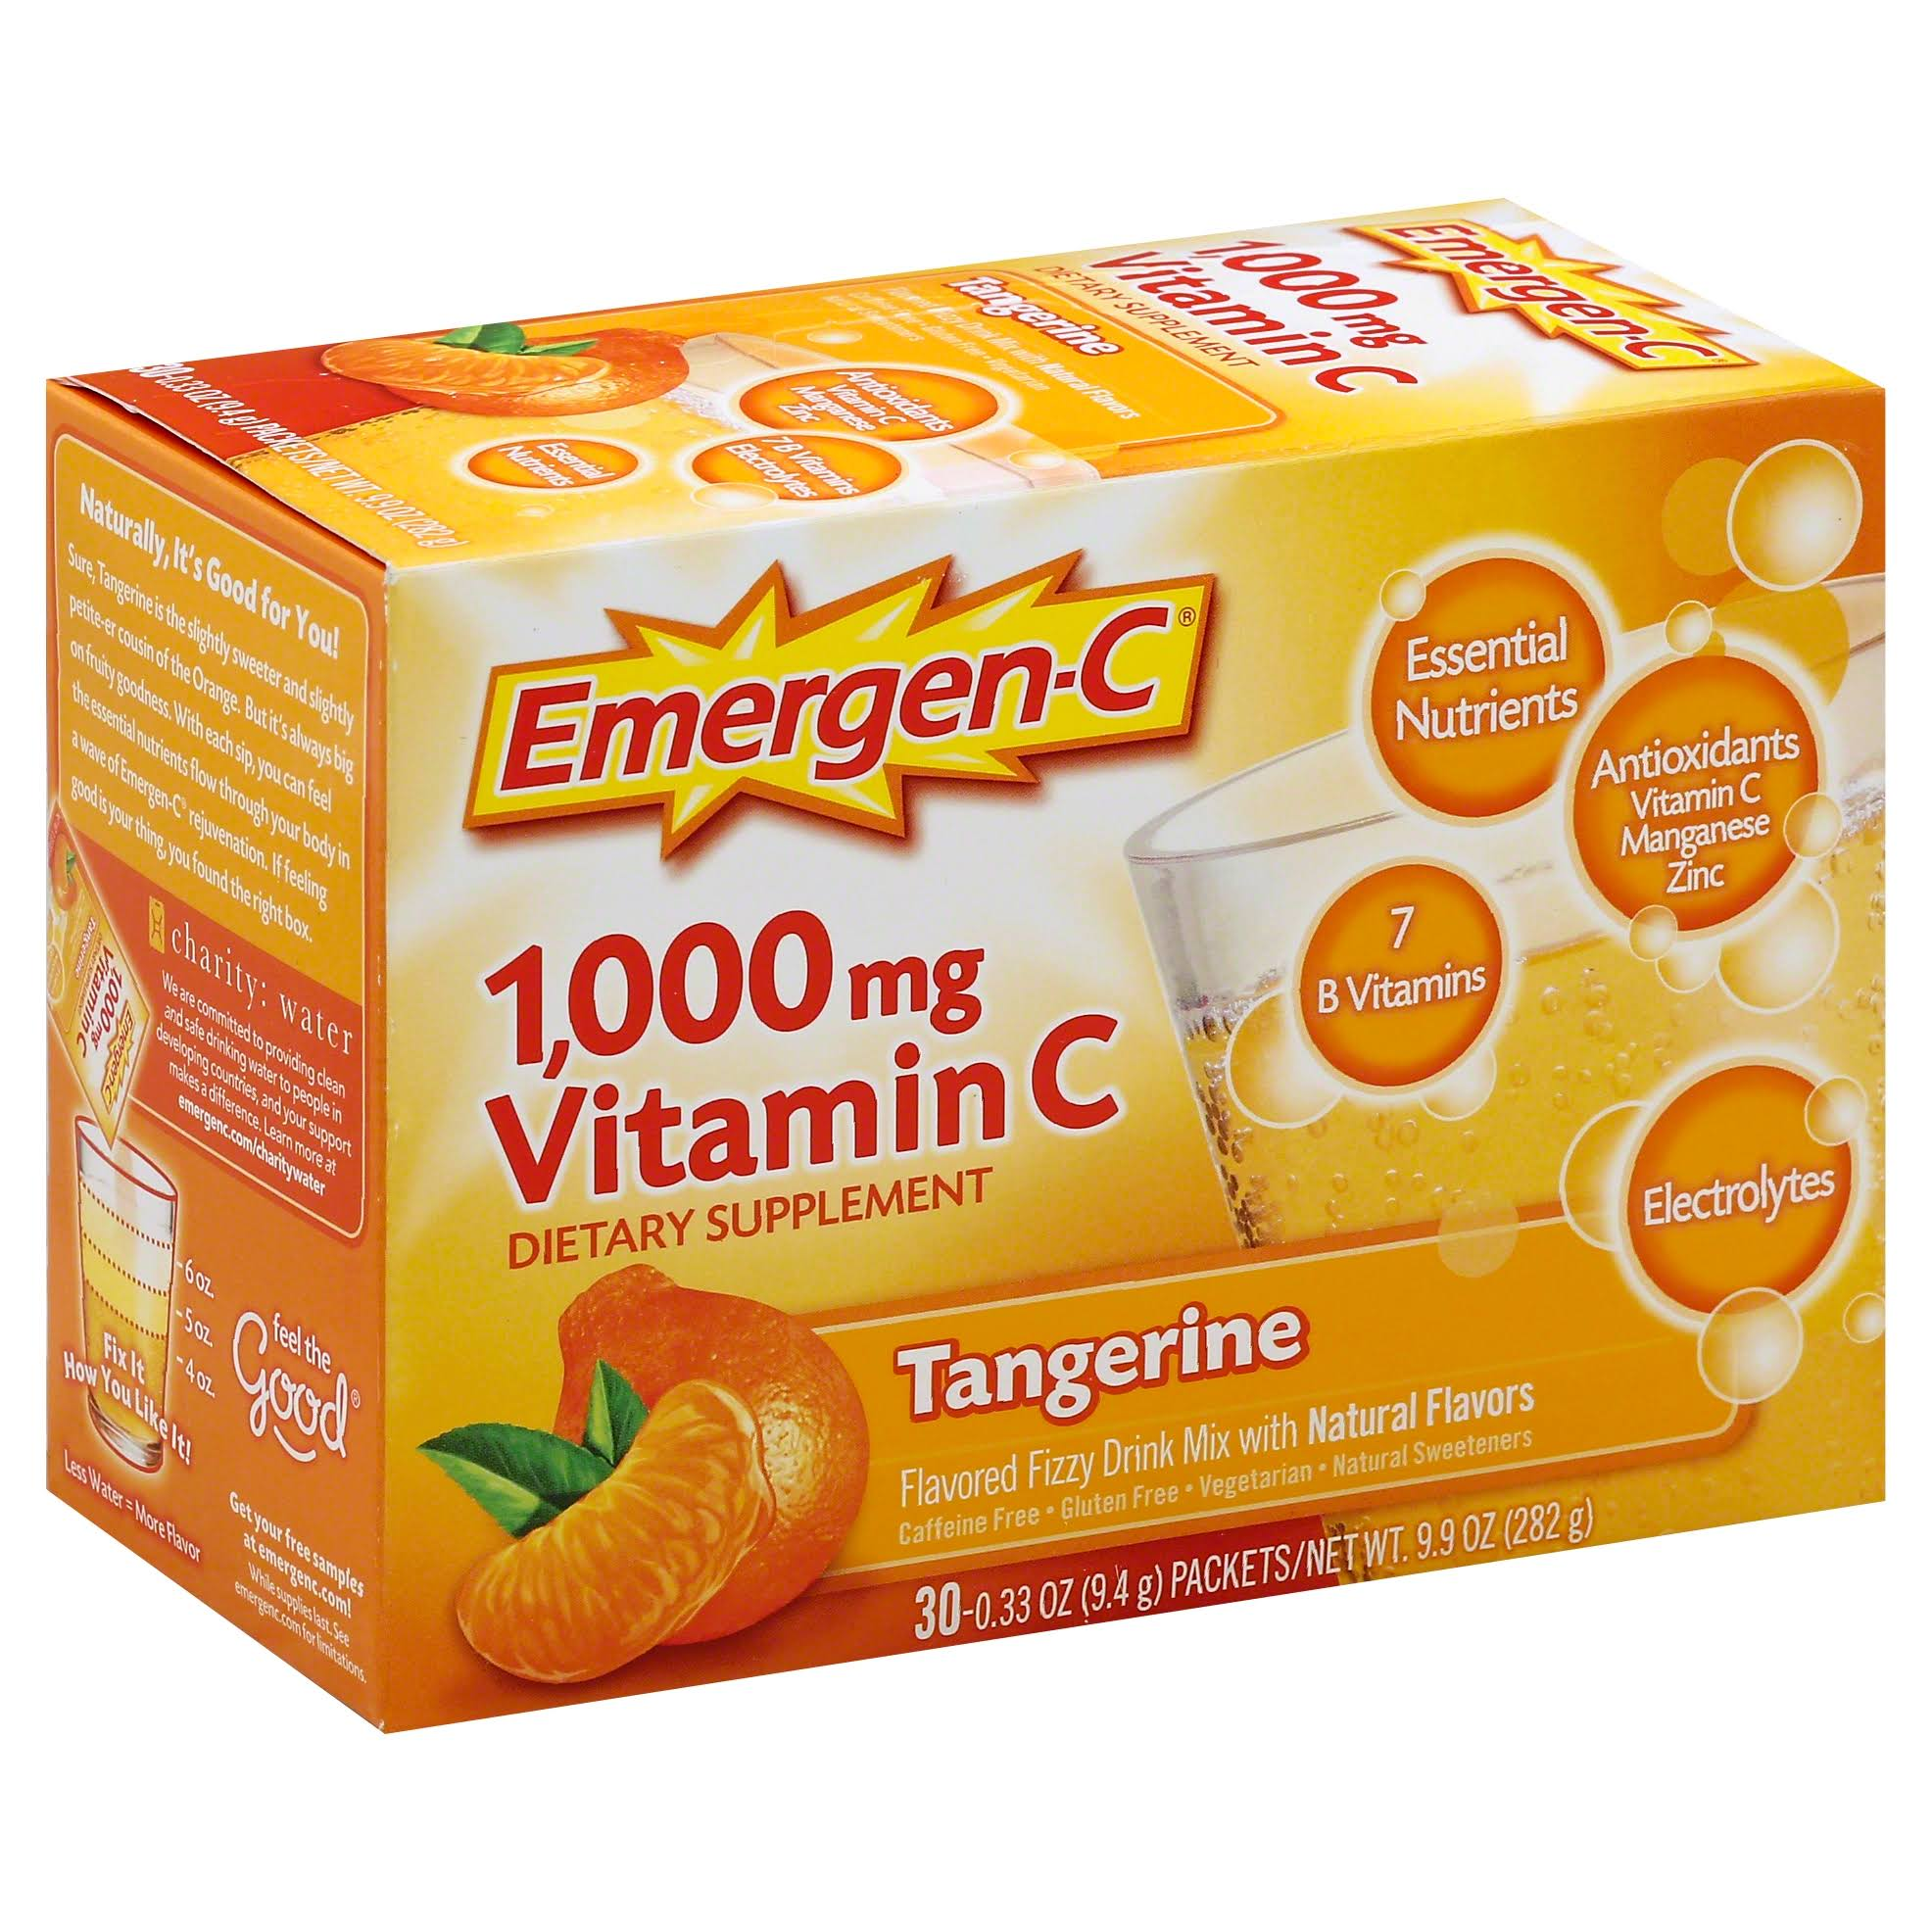 Emergen-C Tangerine Vitamin C Flavored Fizzy Drink Mix Supplement - 1,000mg, 0.33oz, 30ct